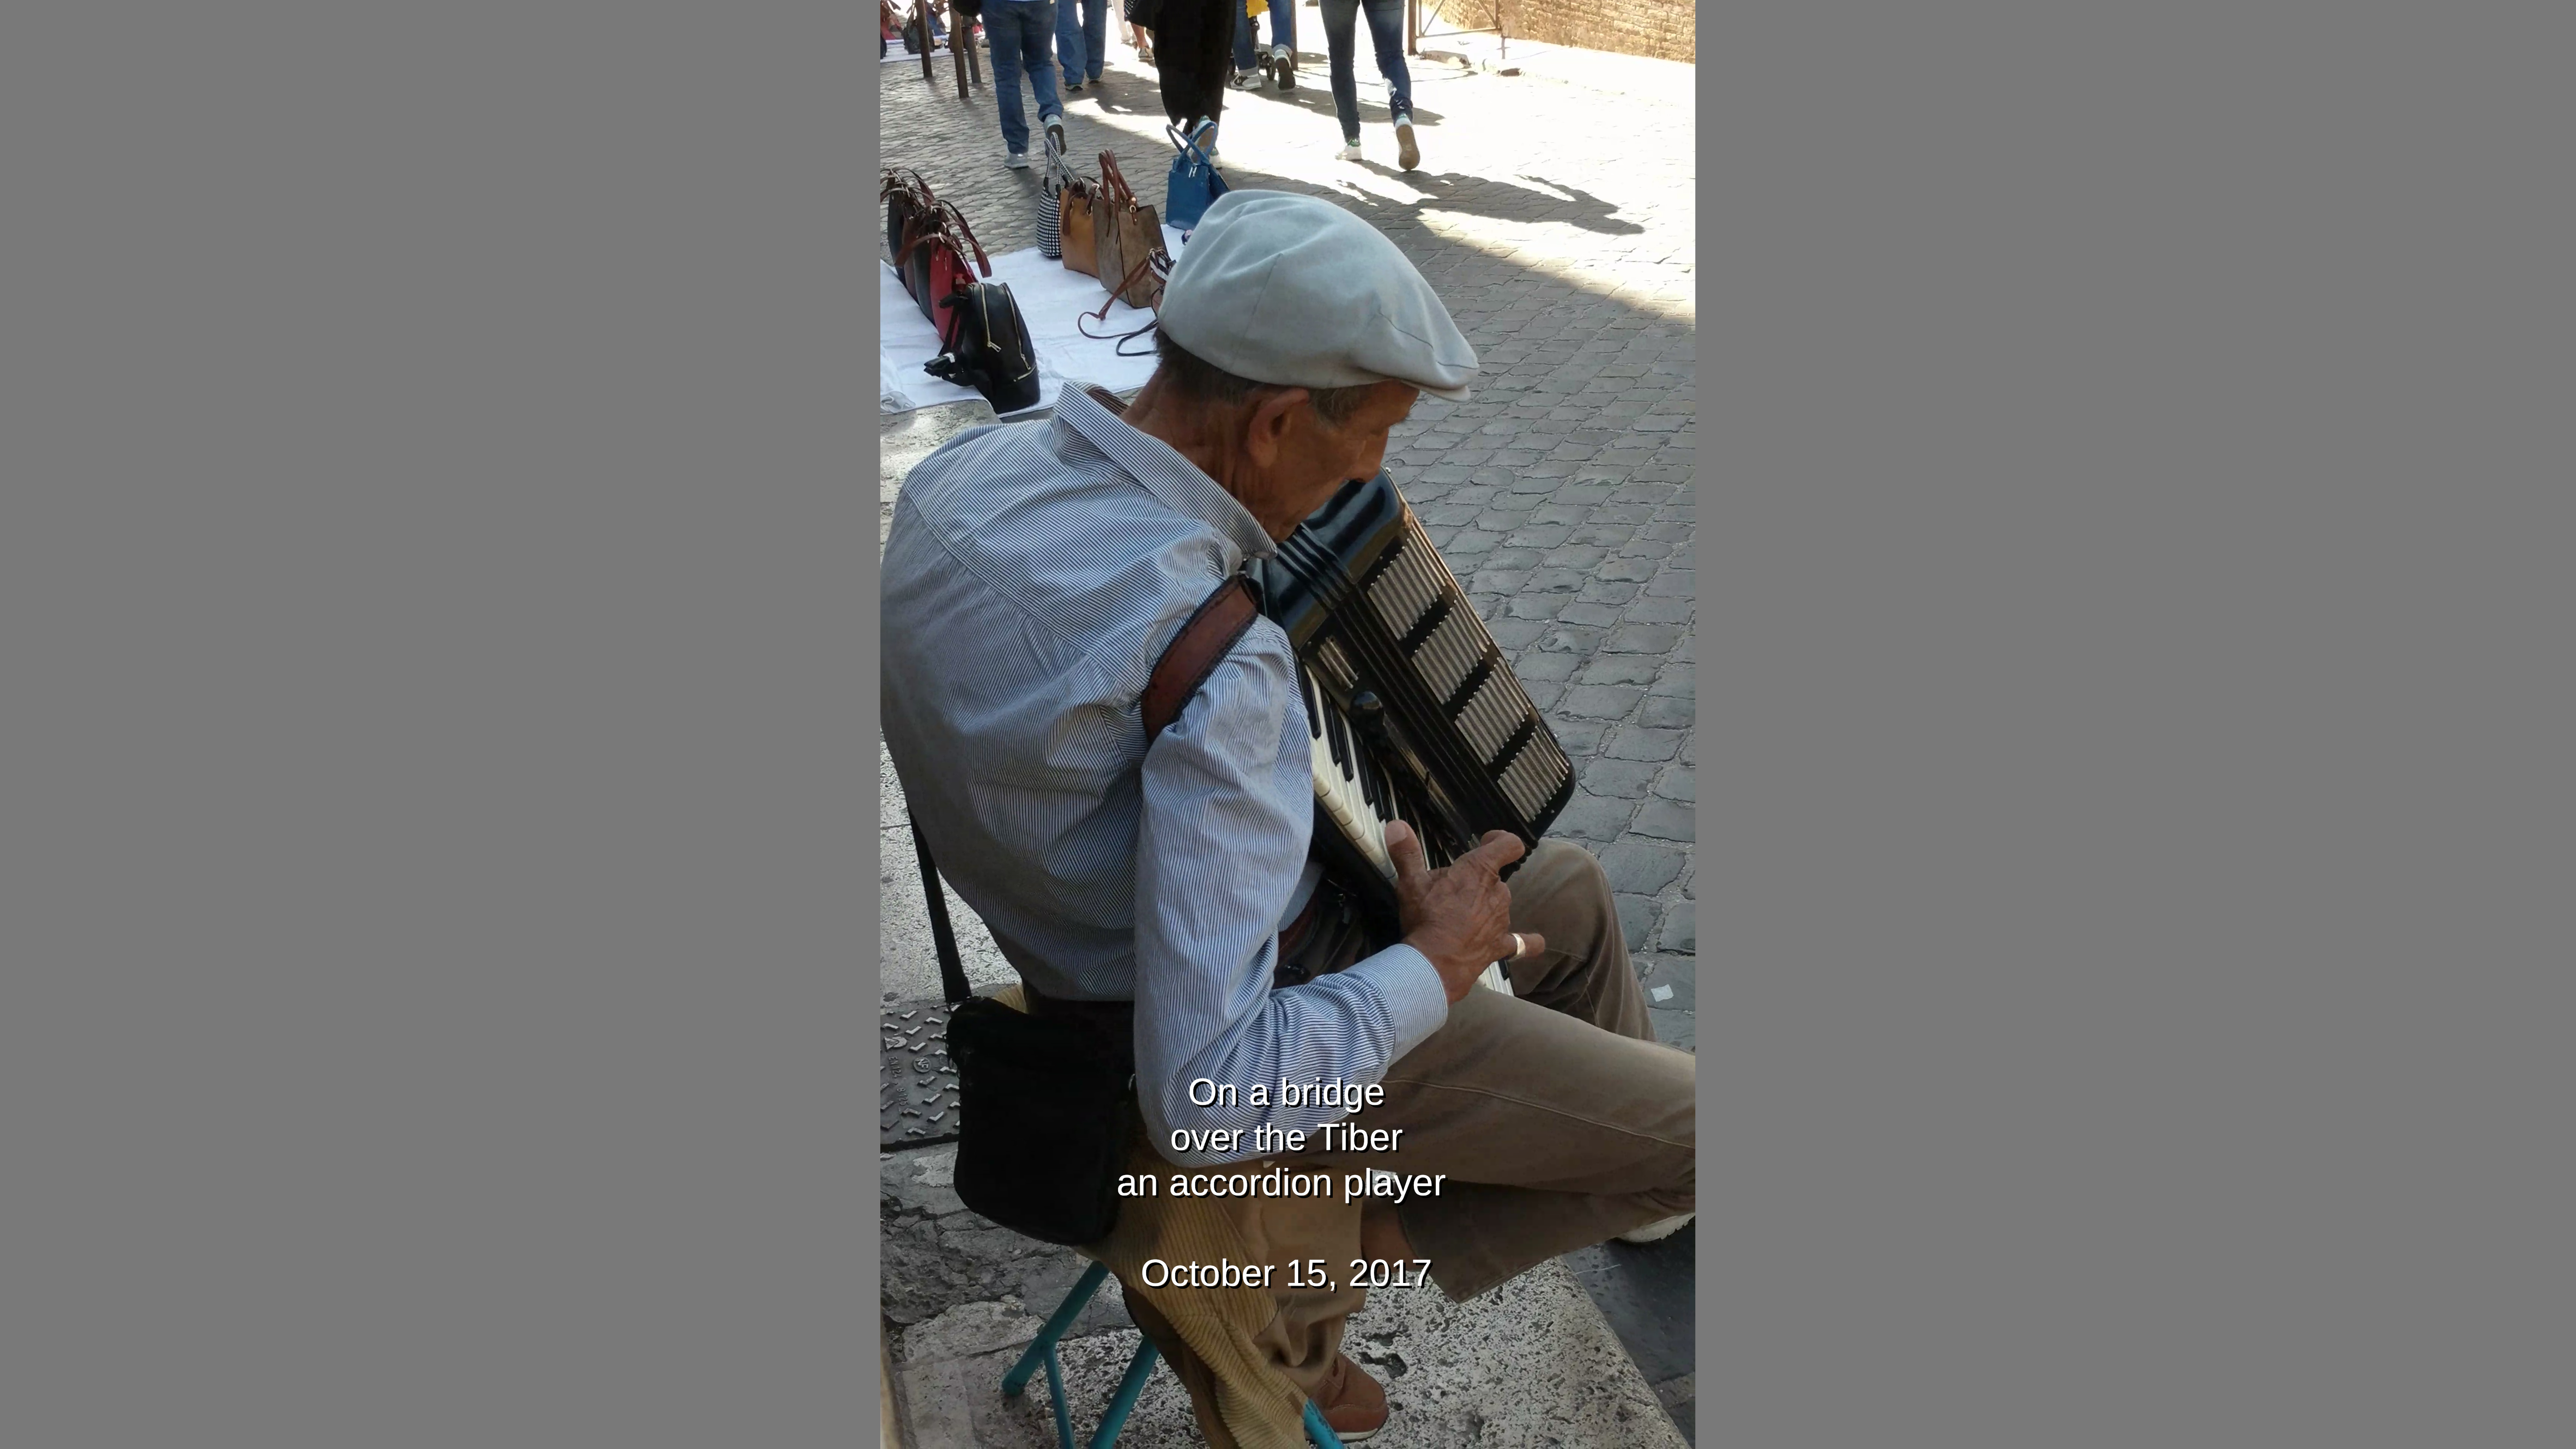 An accordion player in Rome